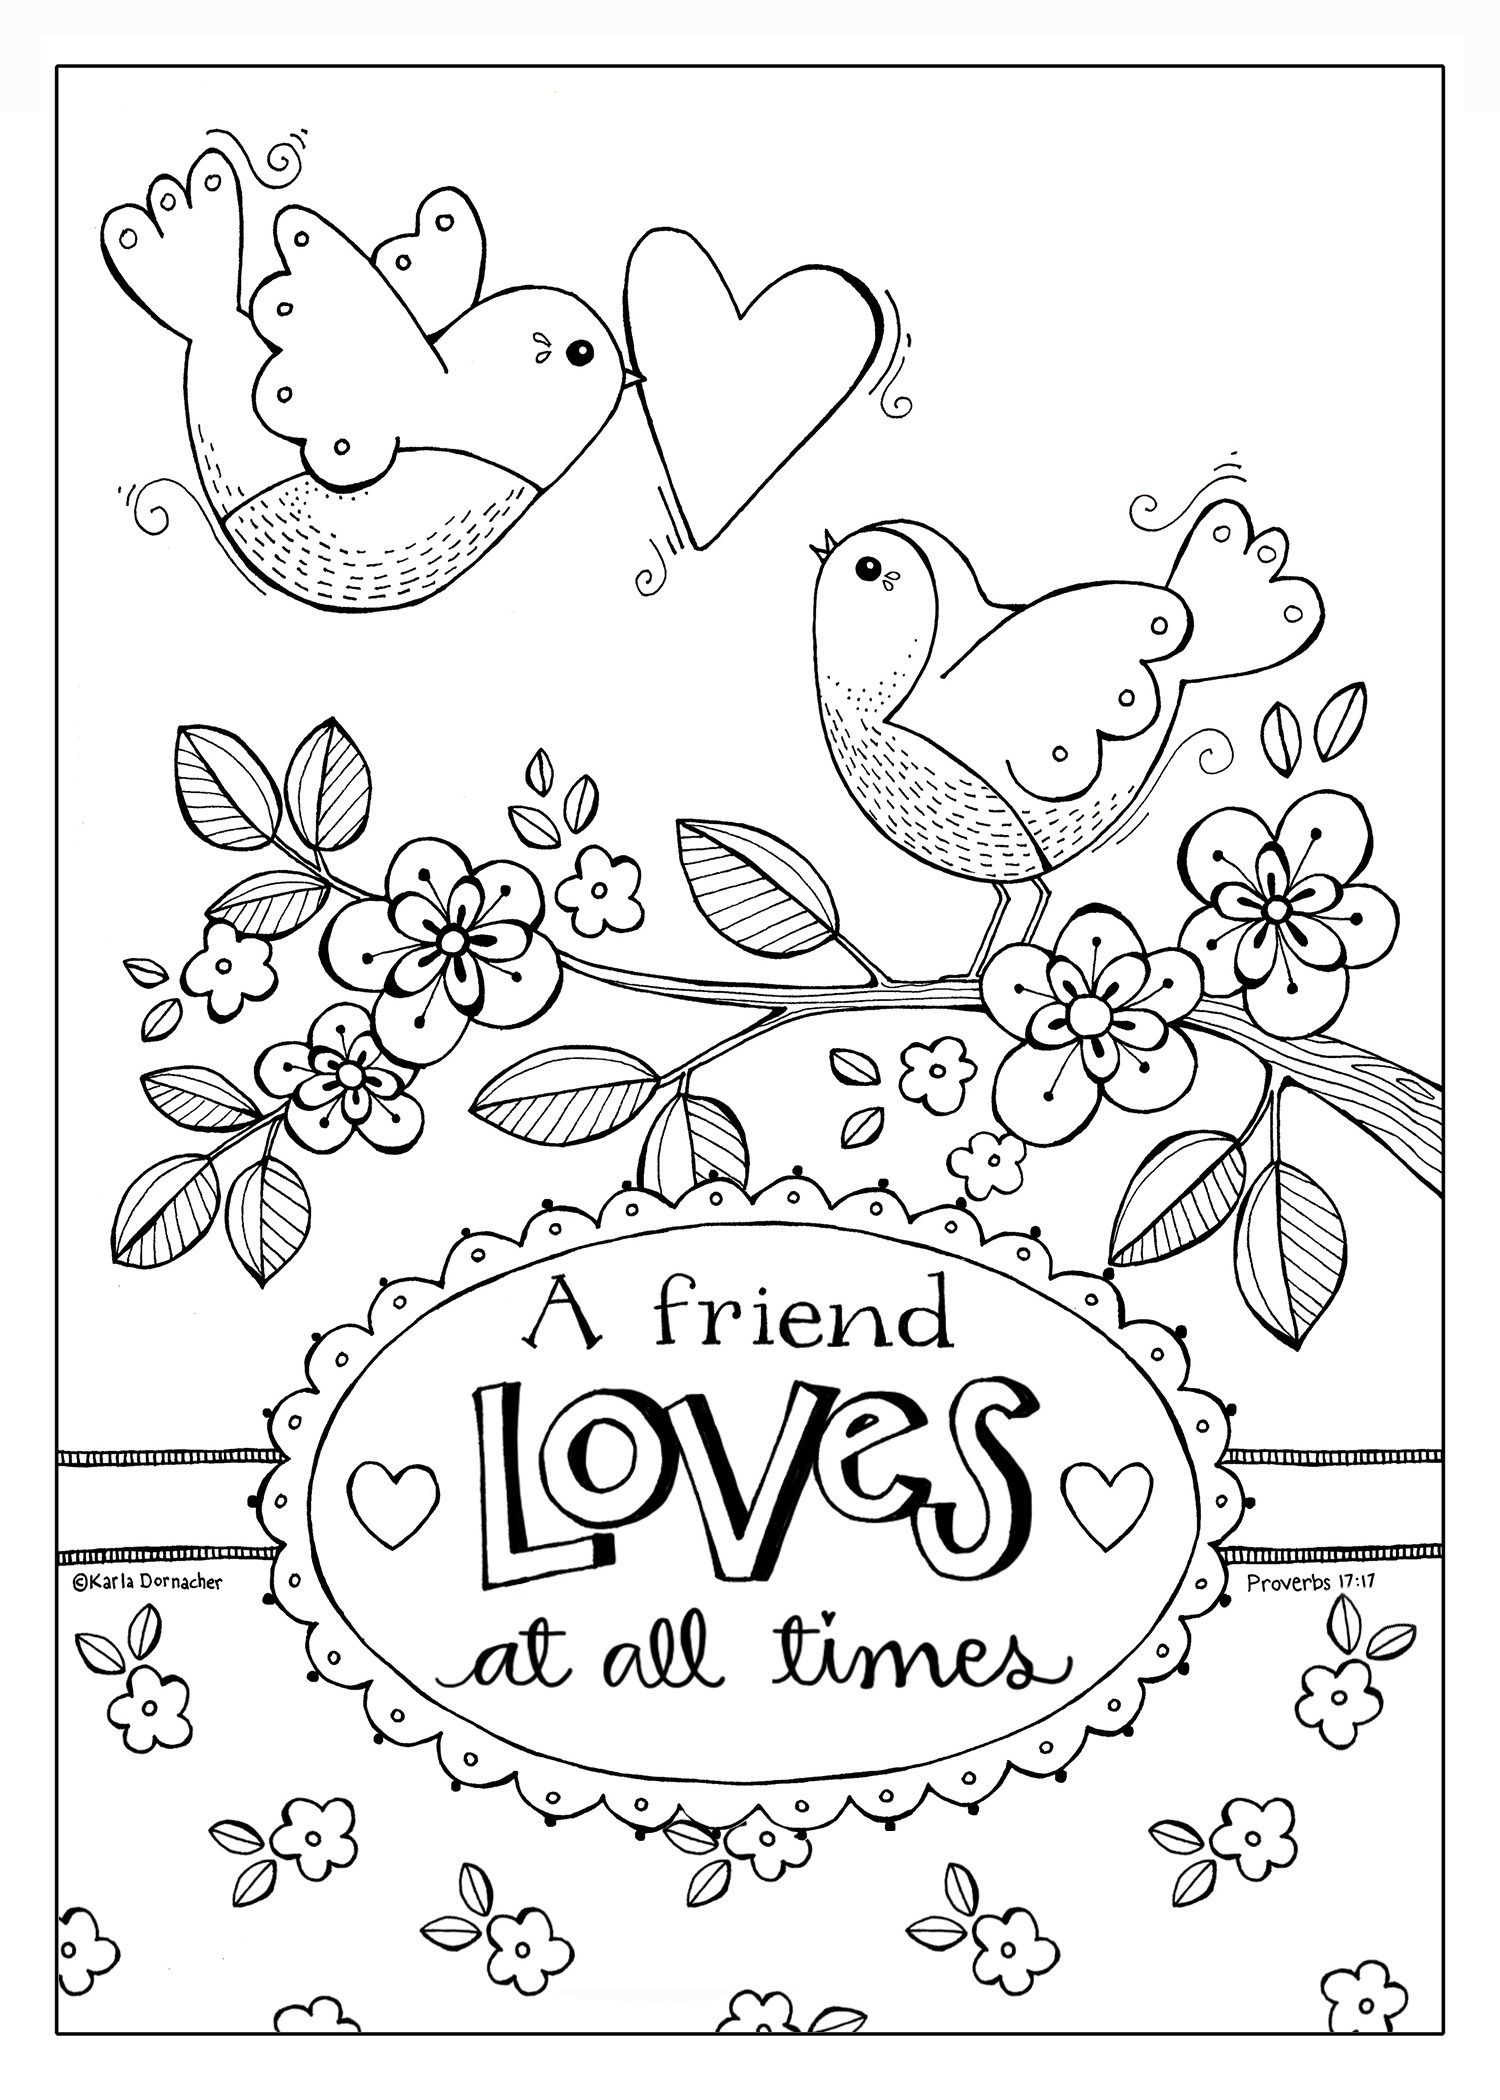 Free Printables Valentine Coloring Pages Valentine Coloring Coloring Pages [ 2100 x 1500 Pixel ]